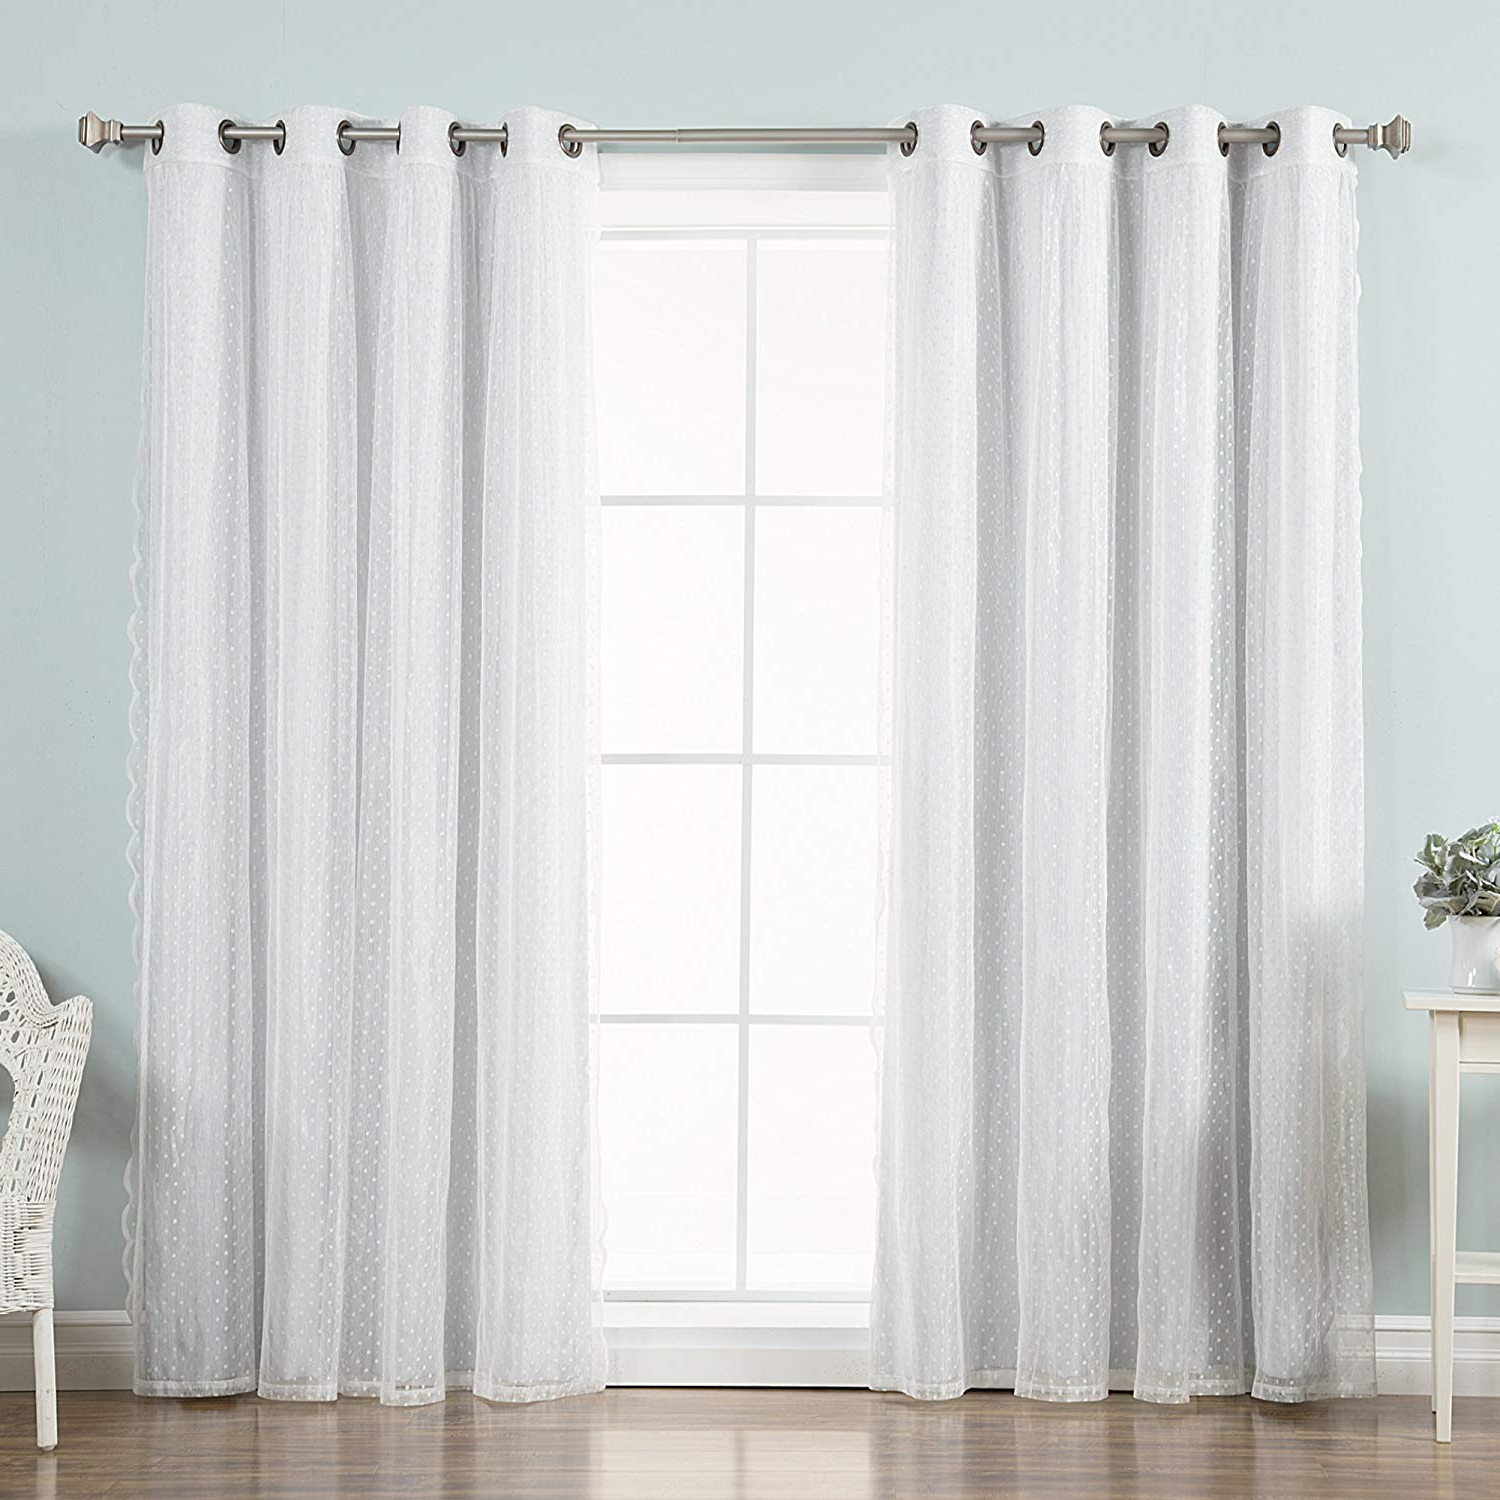 """Best Home Fashion Mix & Match Dotted Tulle Lace & Solid Blackout Curtain Set – Antique Bronze Grommet Top – Vapor – 52""""w X 84""""l – (2 Curtains And 2 In Preferred Mix & Match Blackout Tulle Lace Bronze Grommet Curtain Panel Sets (View 13 of 20)"""